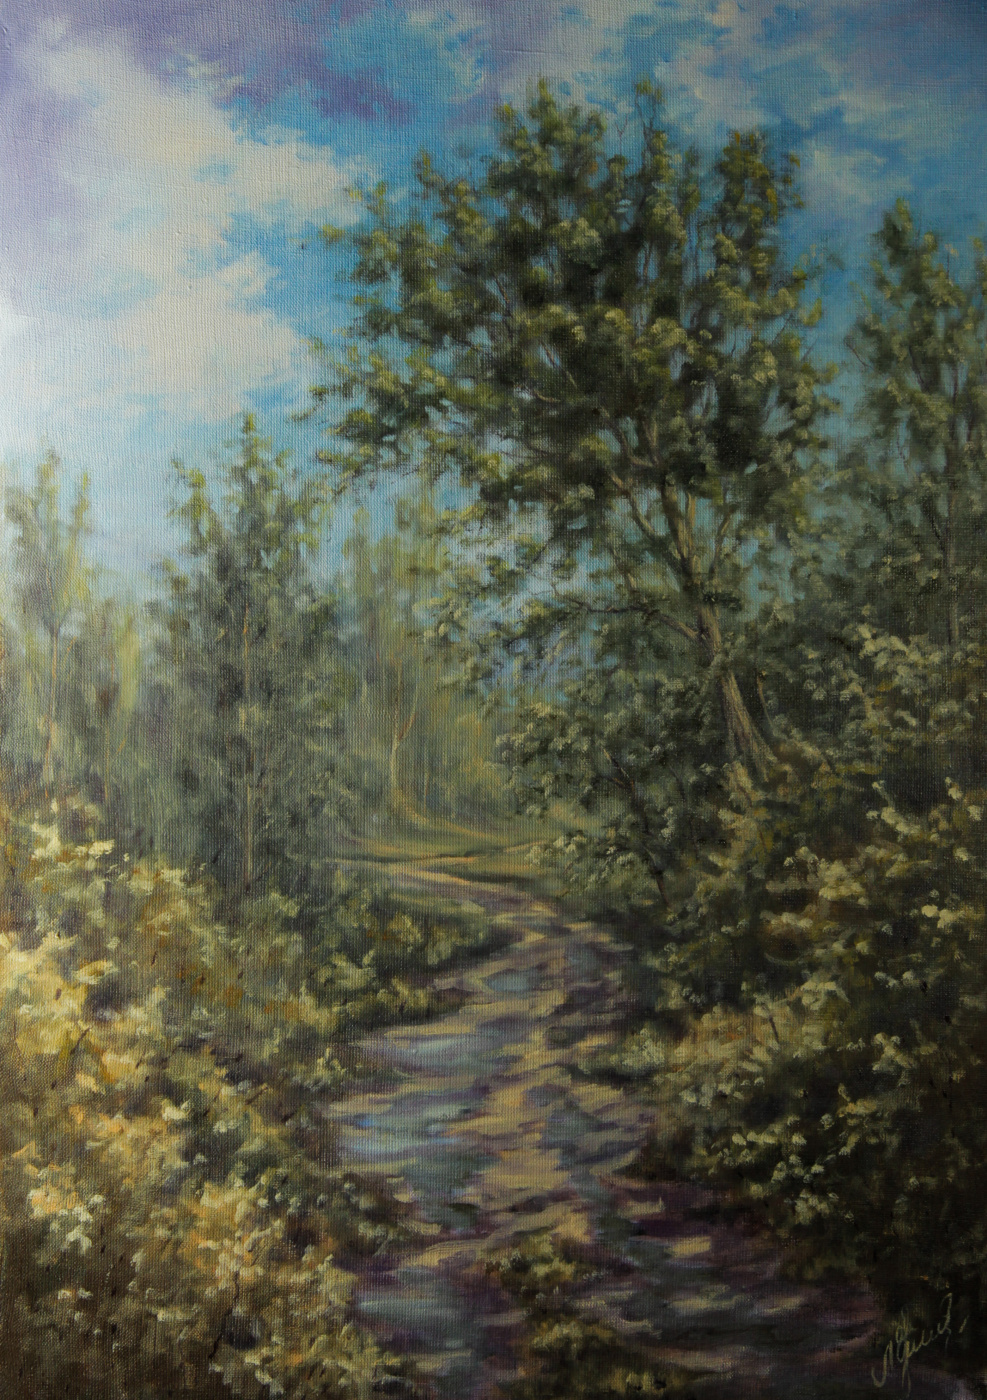 Валерий Левченко. No. 153 The road through the forest